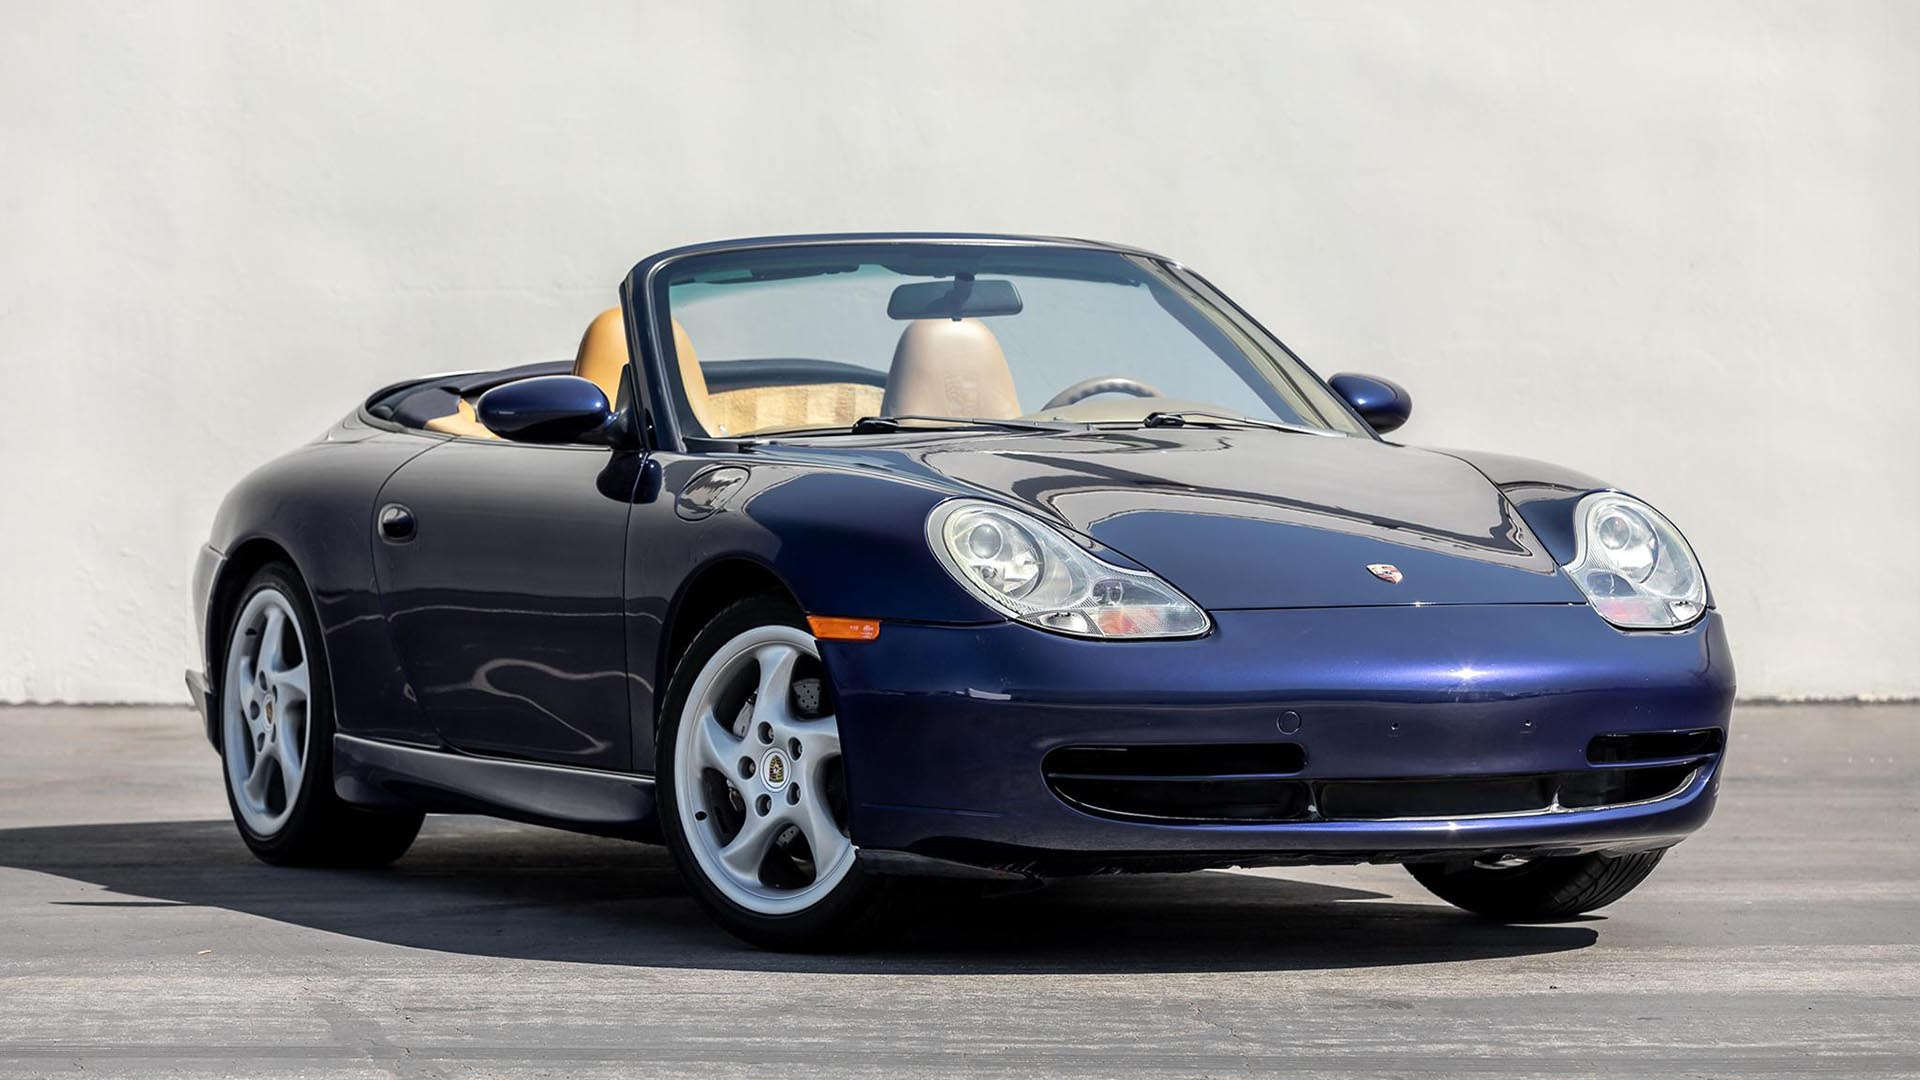 5 Porsches For The Budget-Minded Buyer